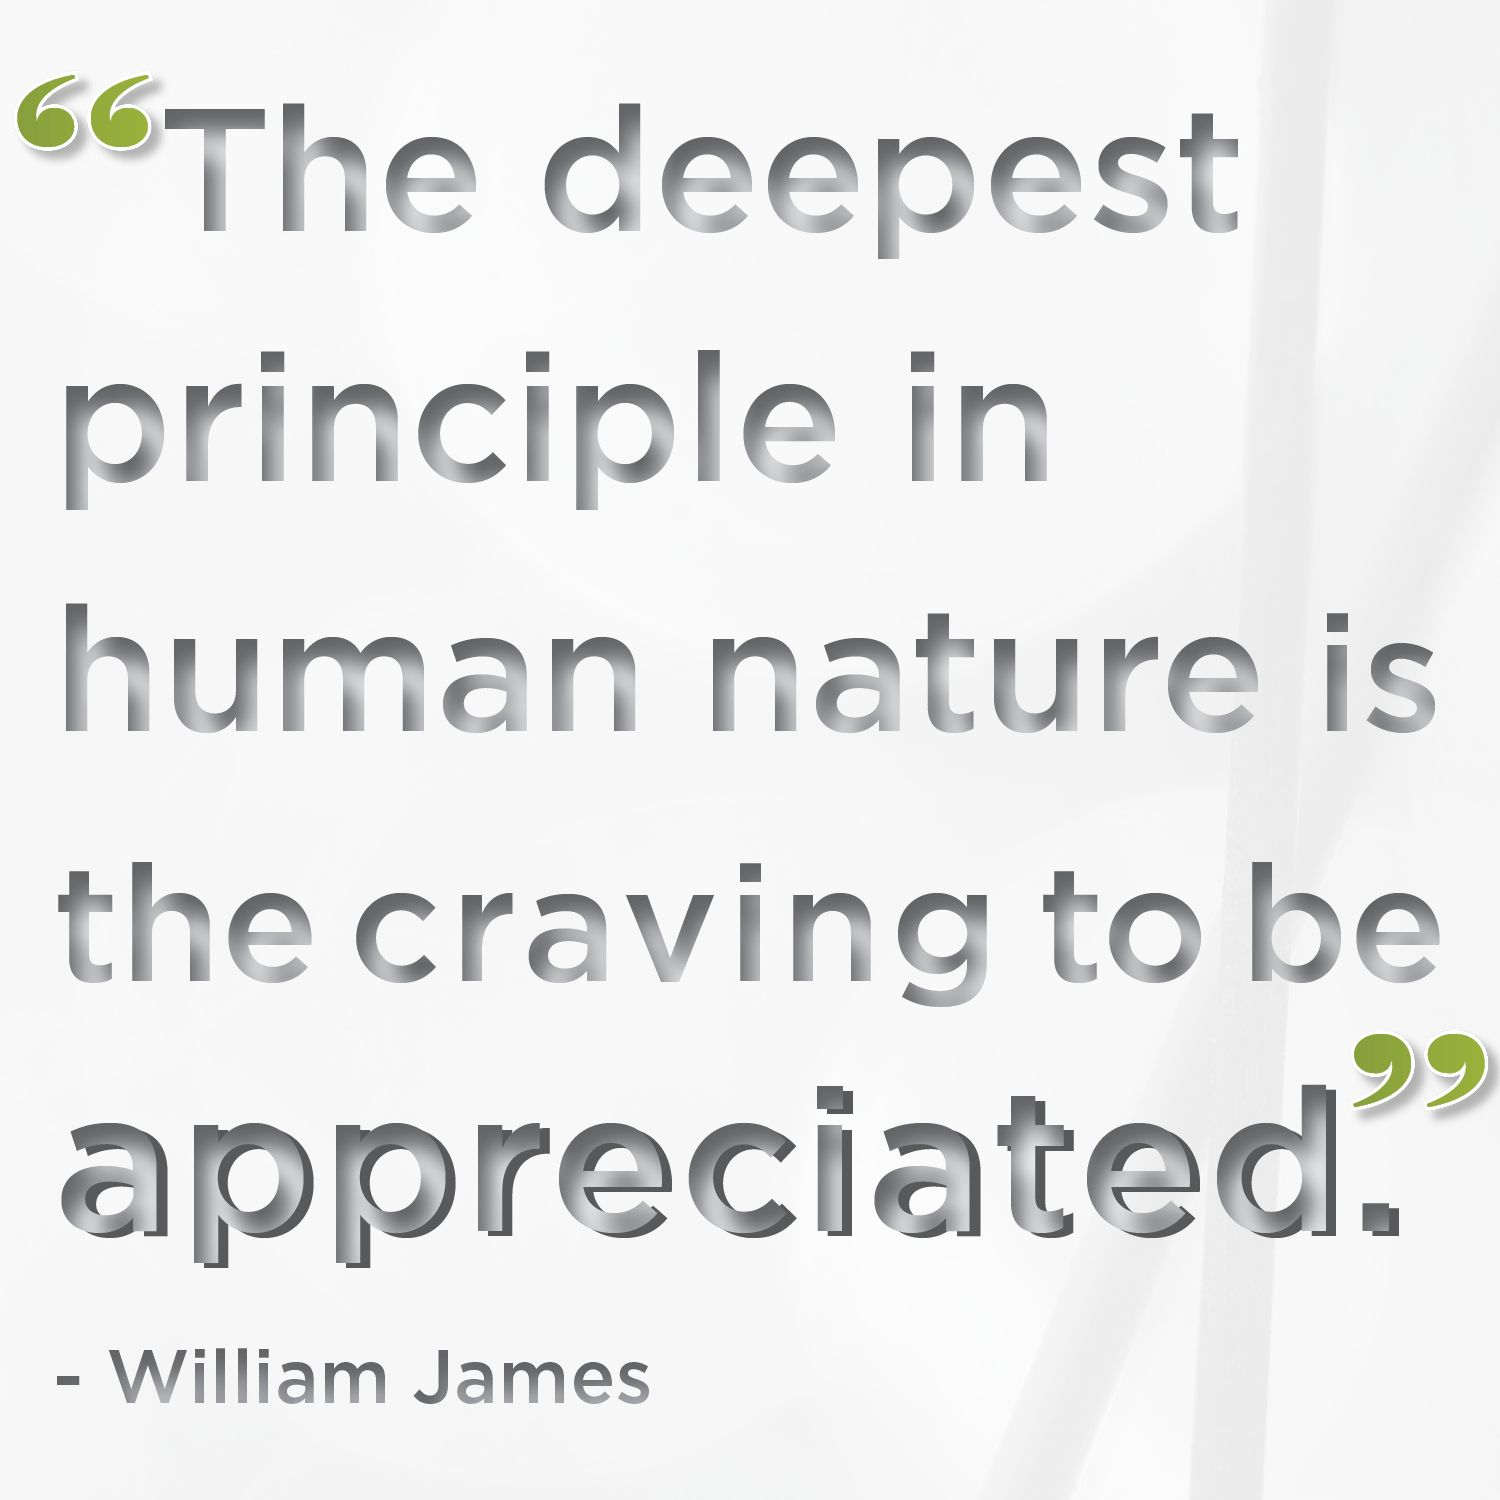 The deepest principle in human nature is the craving to be